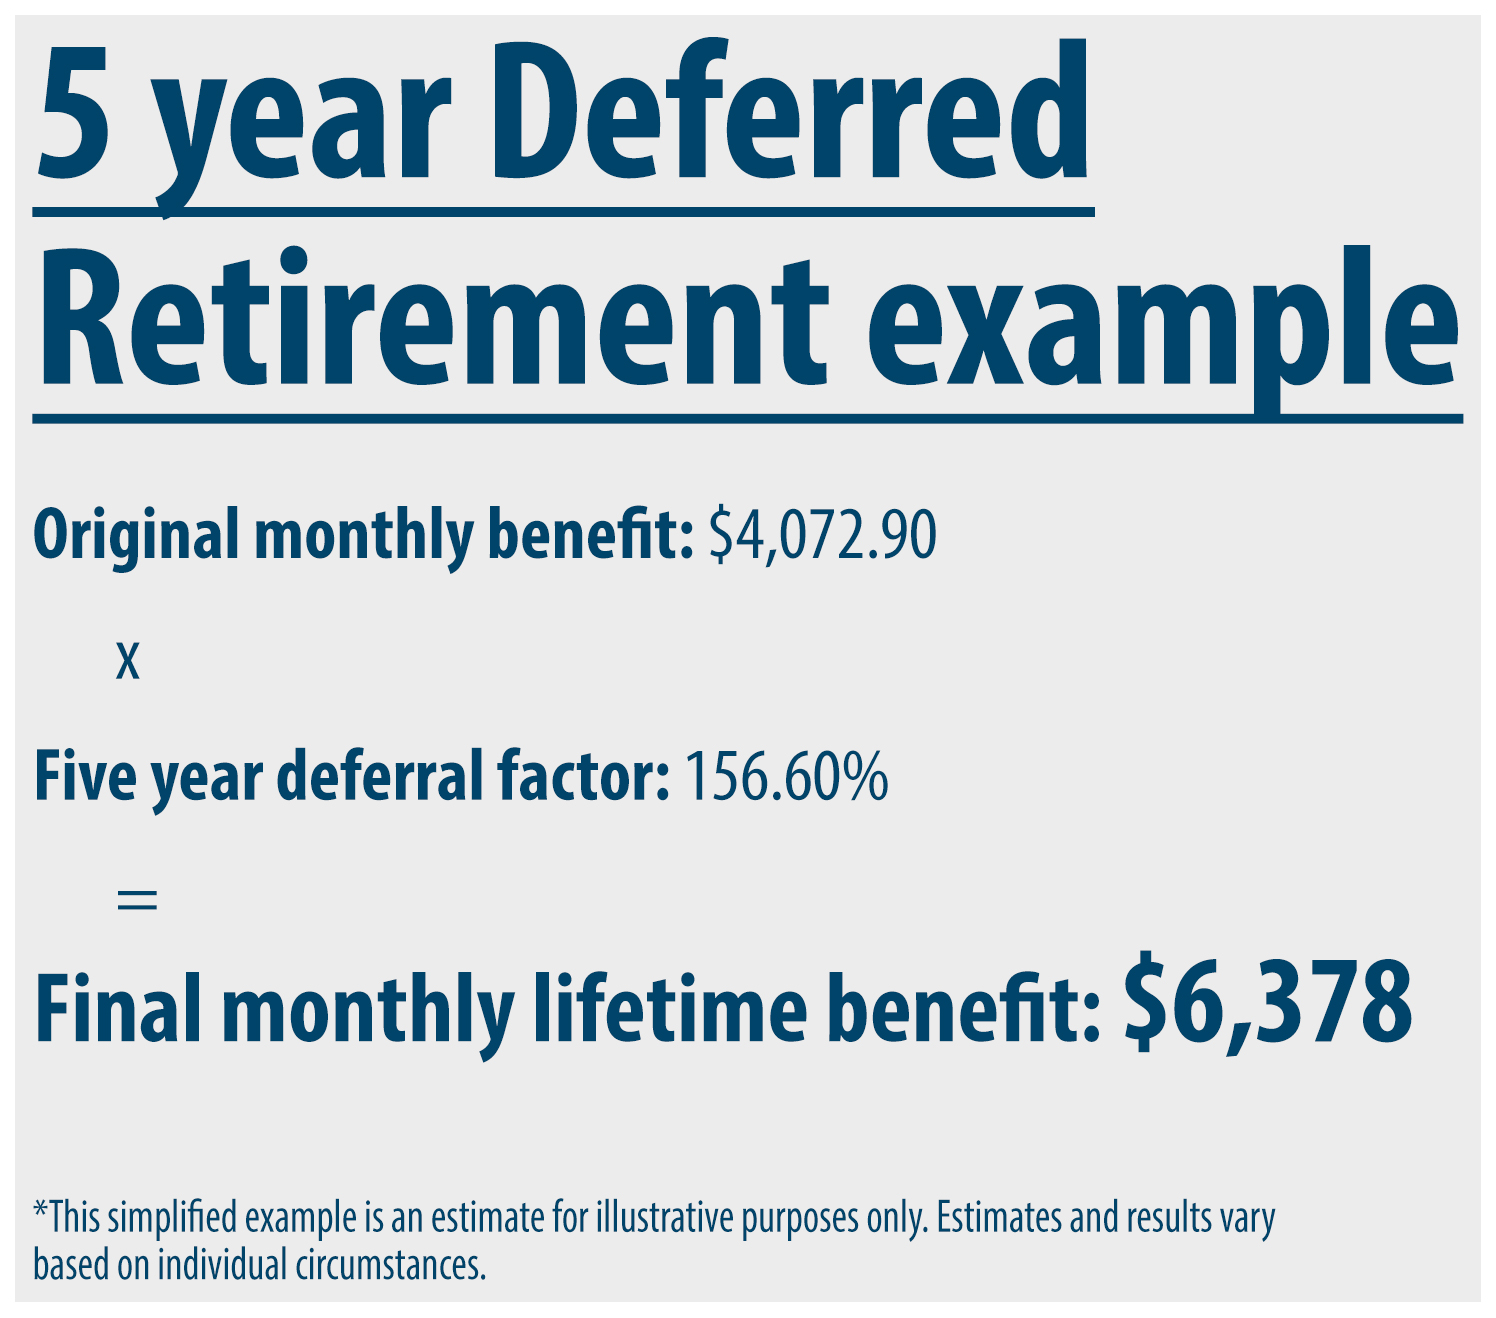 Deferred Retirement calculation example